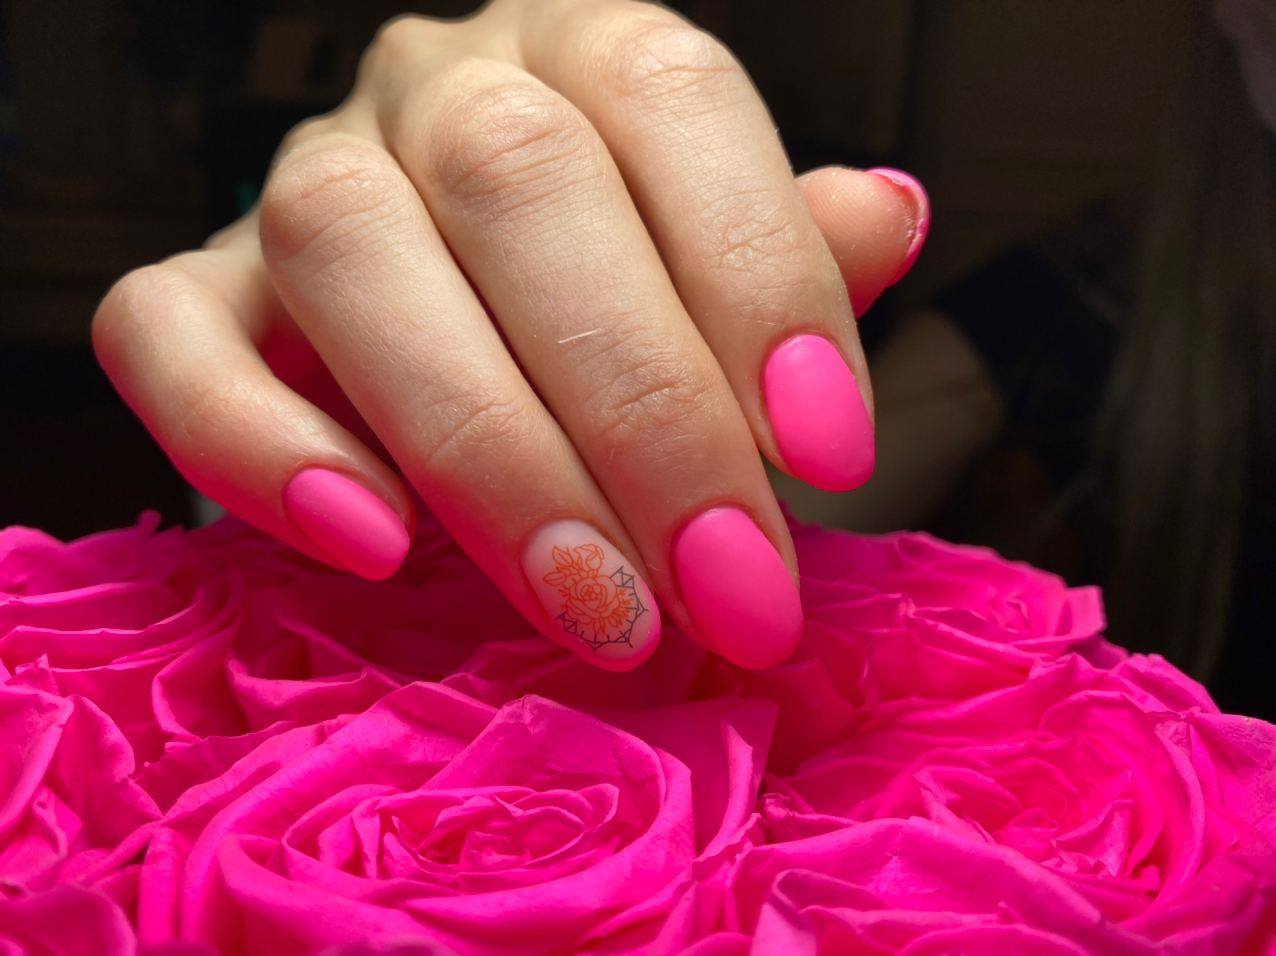 Neon Pink Nails with Design